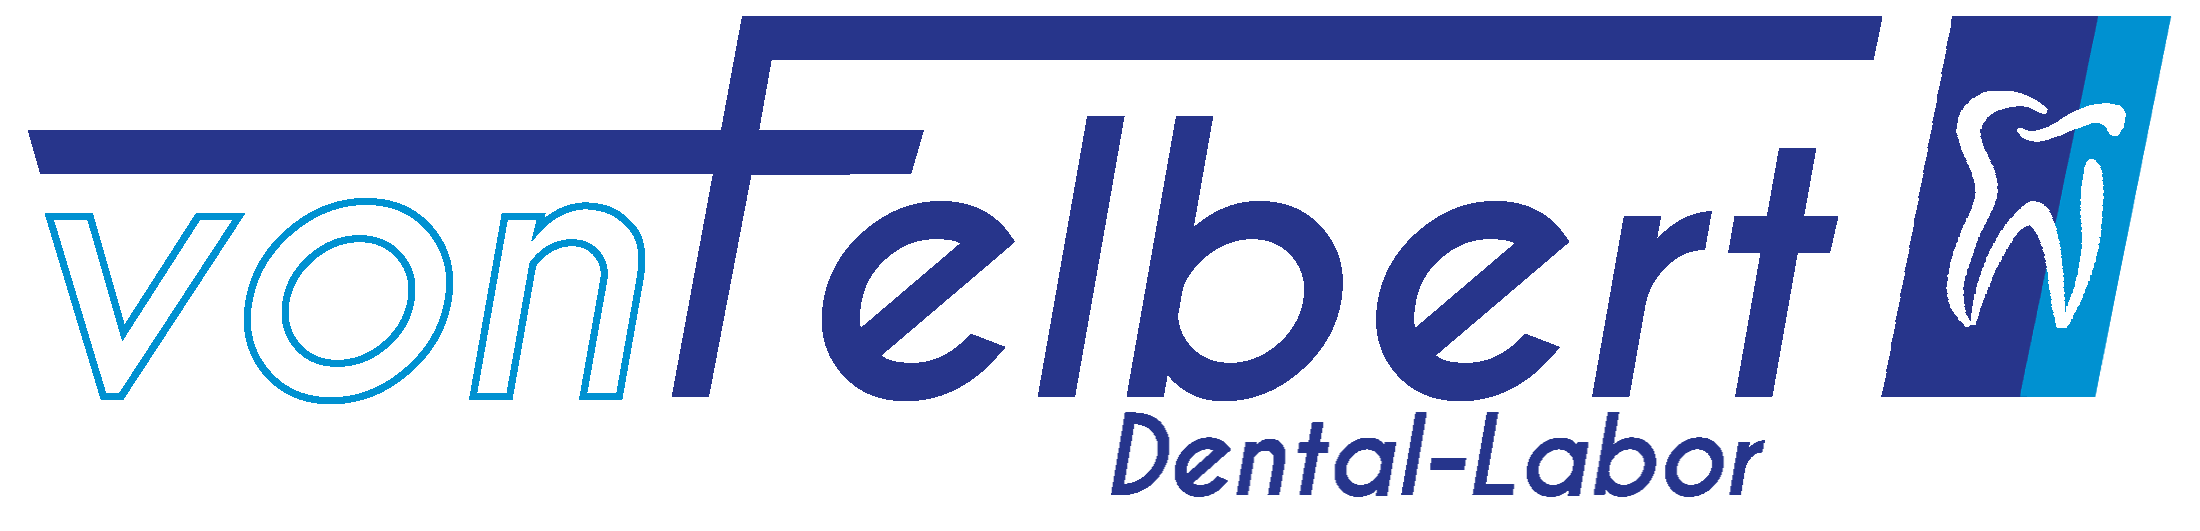 Dental Labor von Felbert Logo